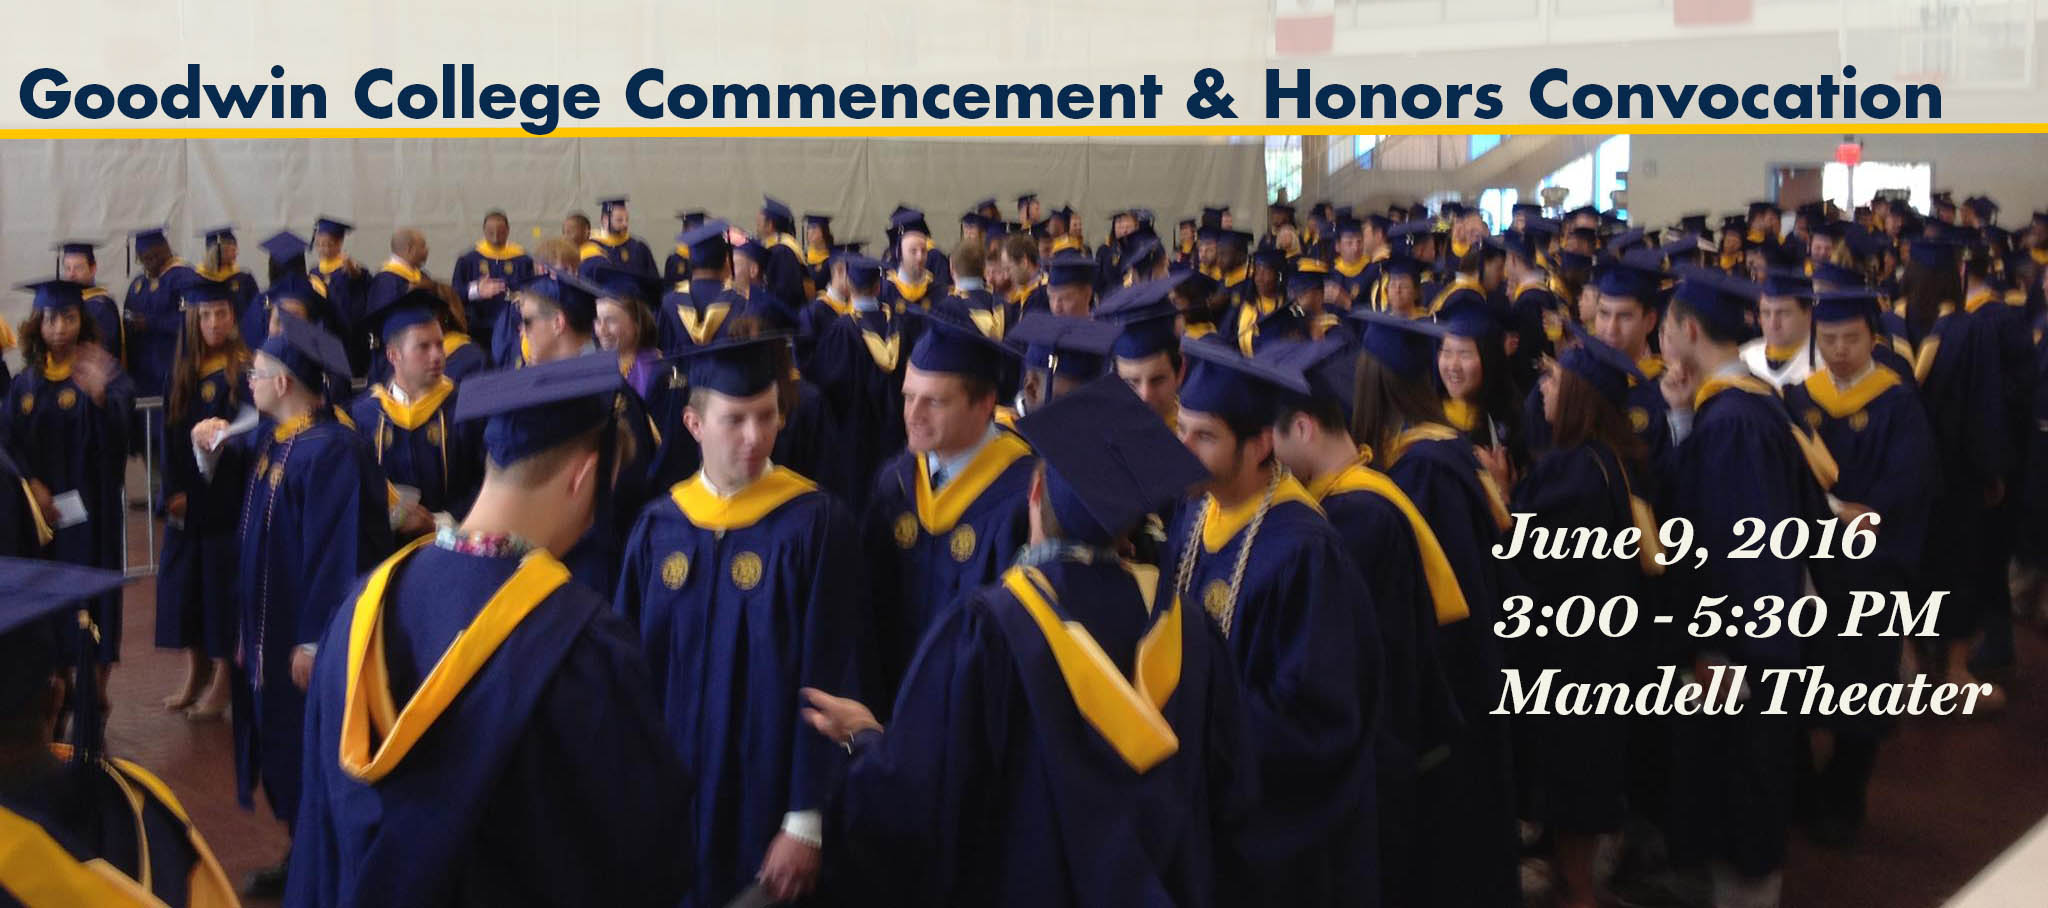 Commencement & Honors Convocation 2016